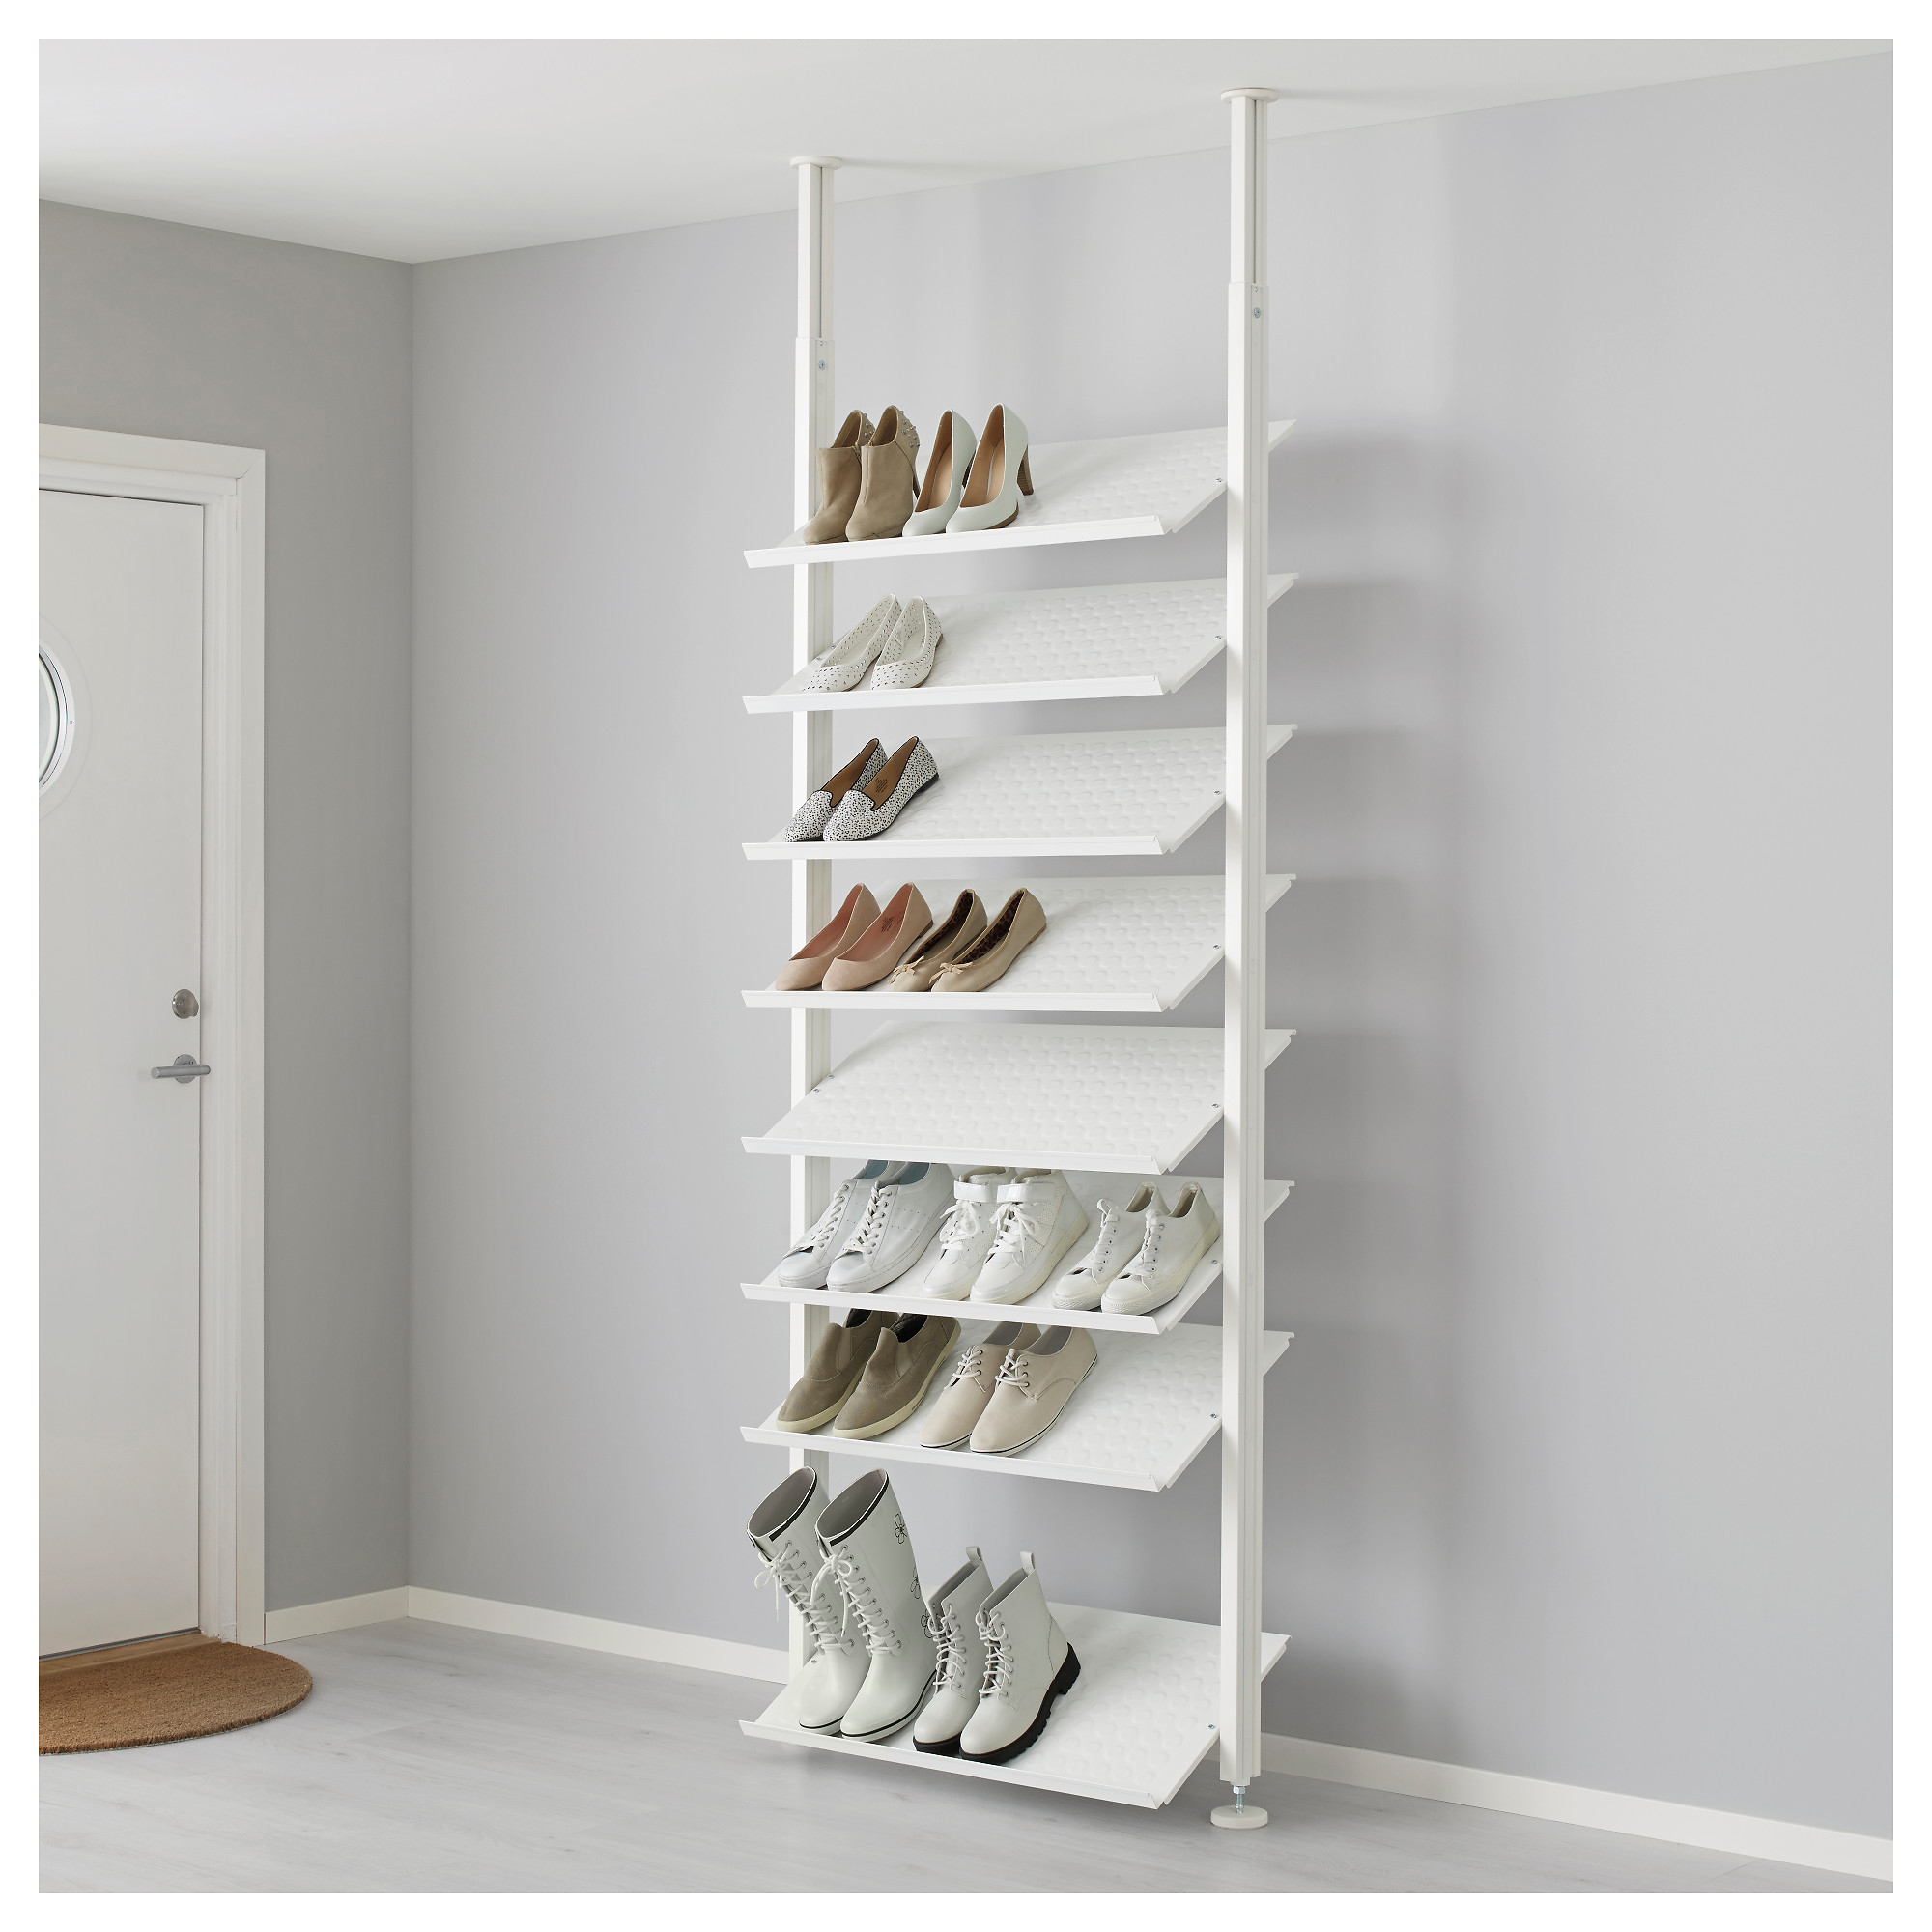 Design Shoe Stand Ikea elvarli shoe shelf 80x36 cm ikea